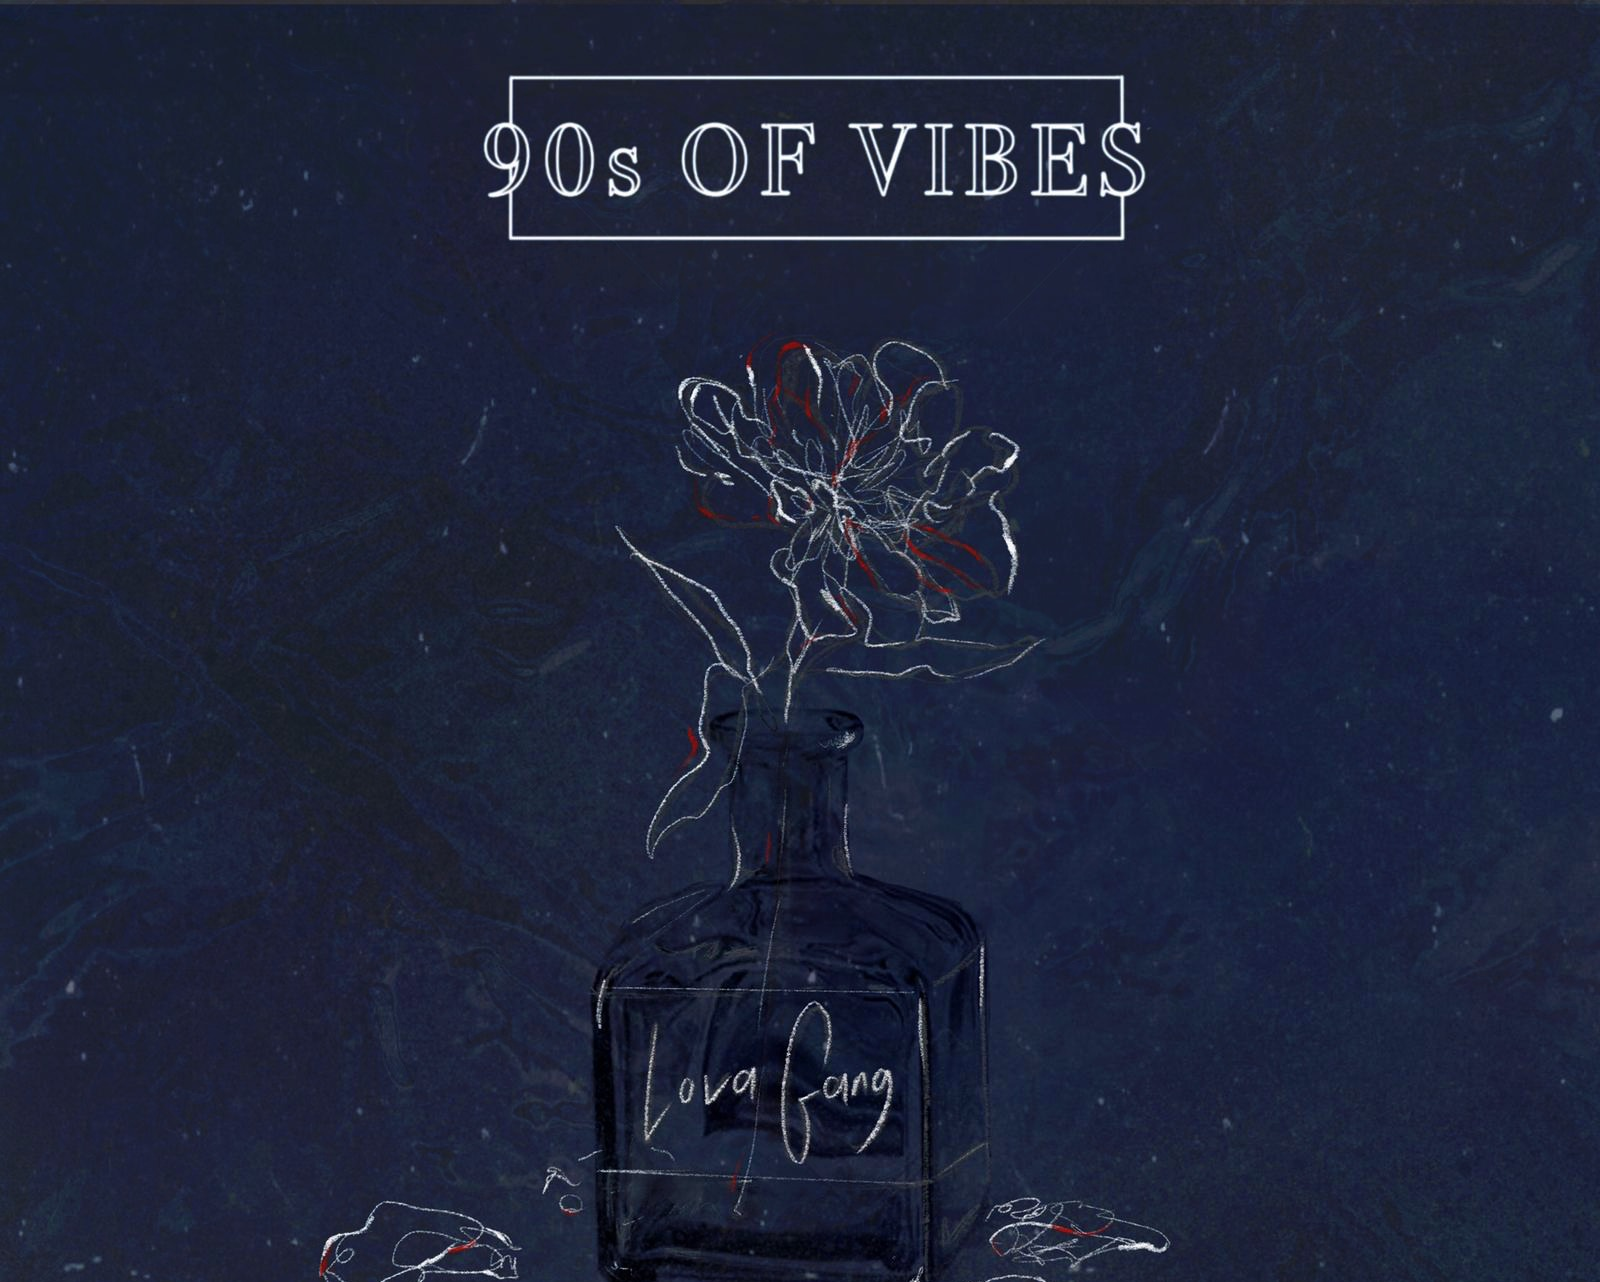 EP 90s OF VIBES BY THELOVE